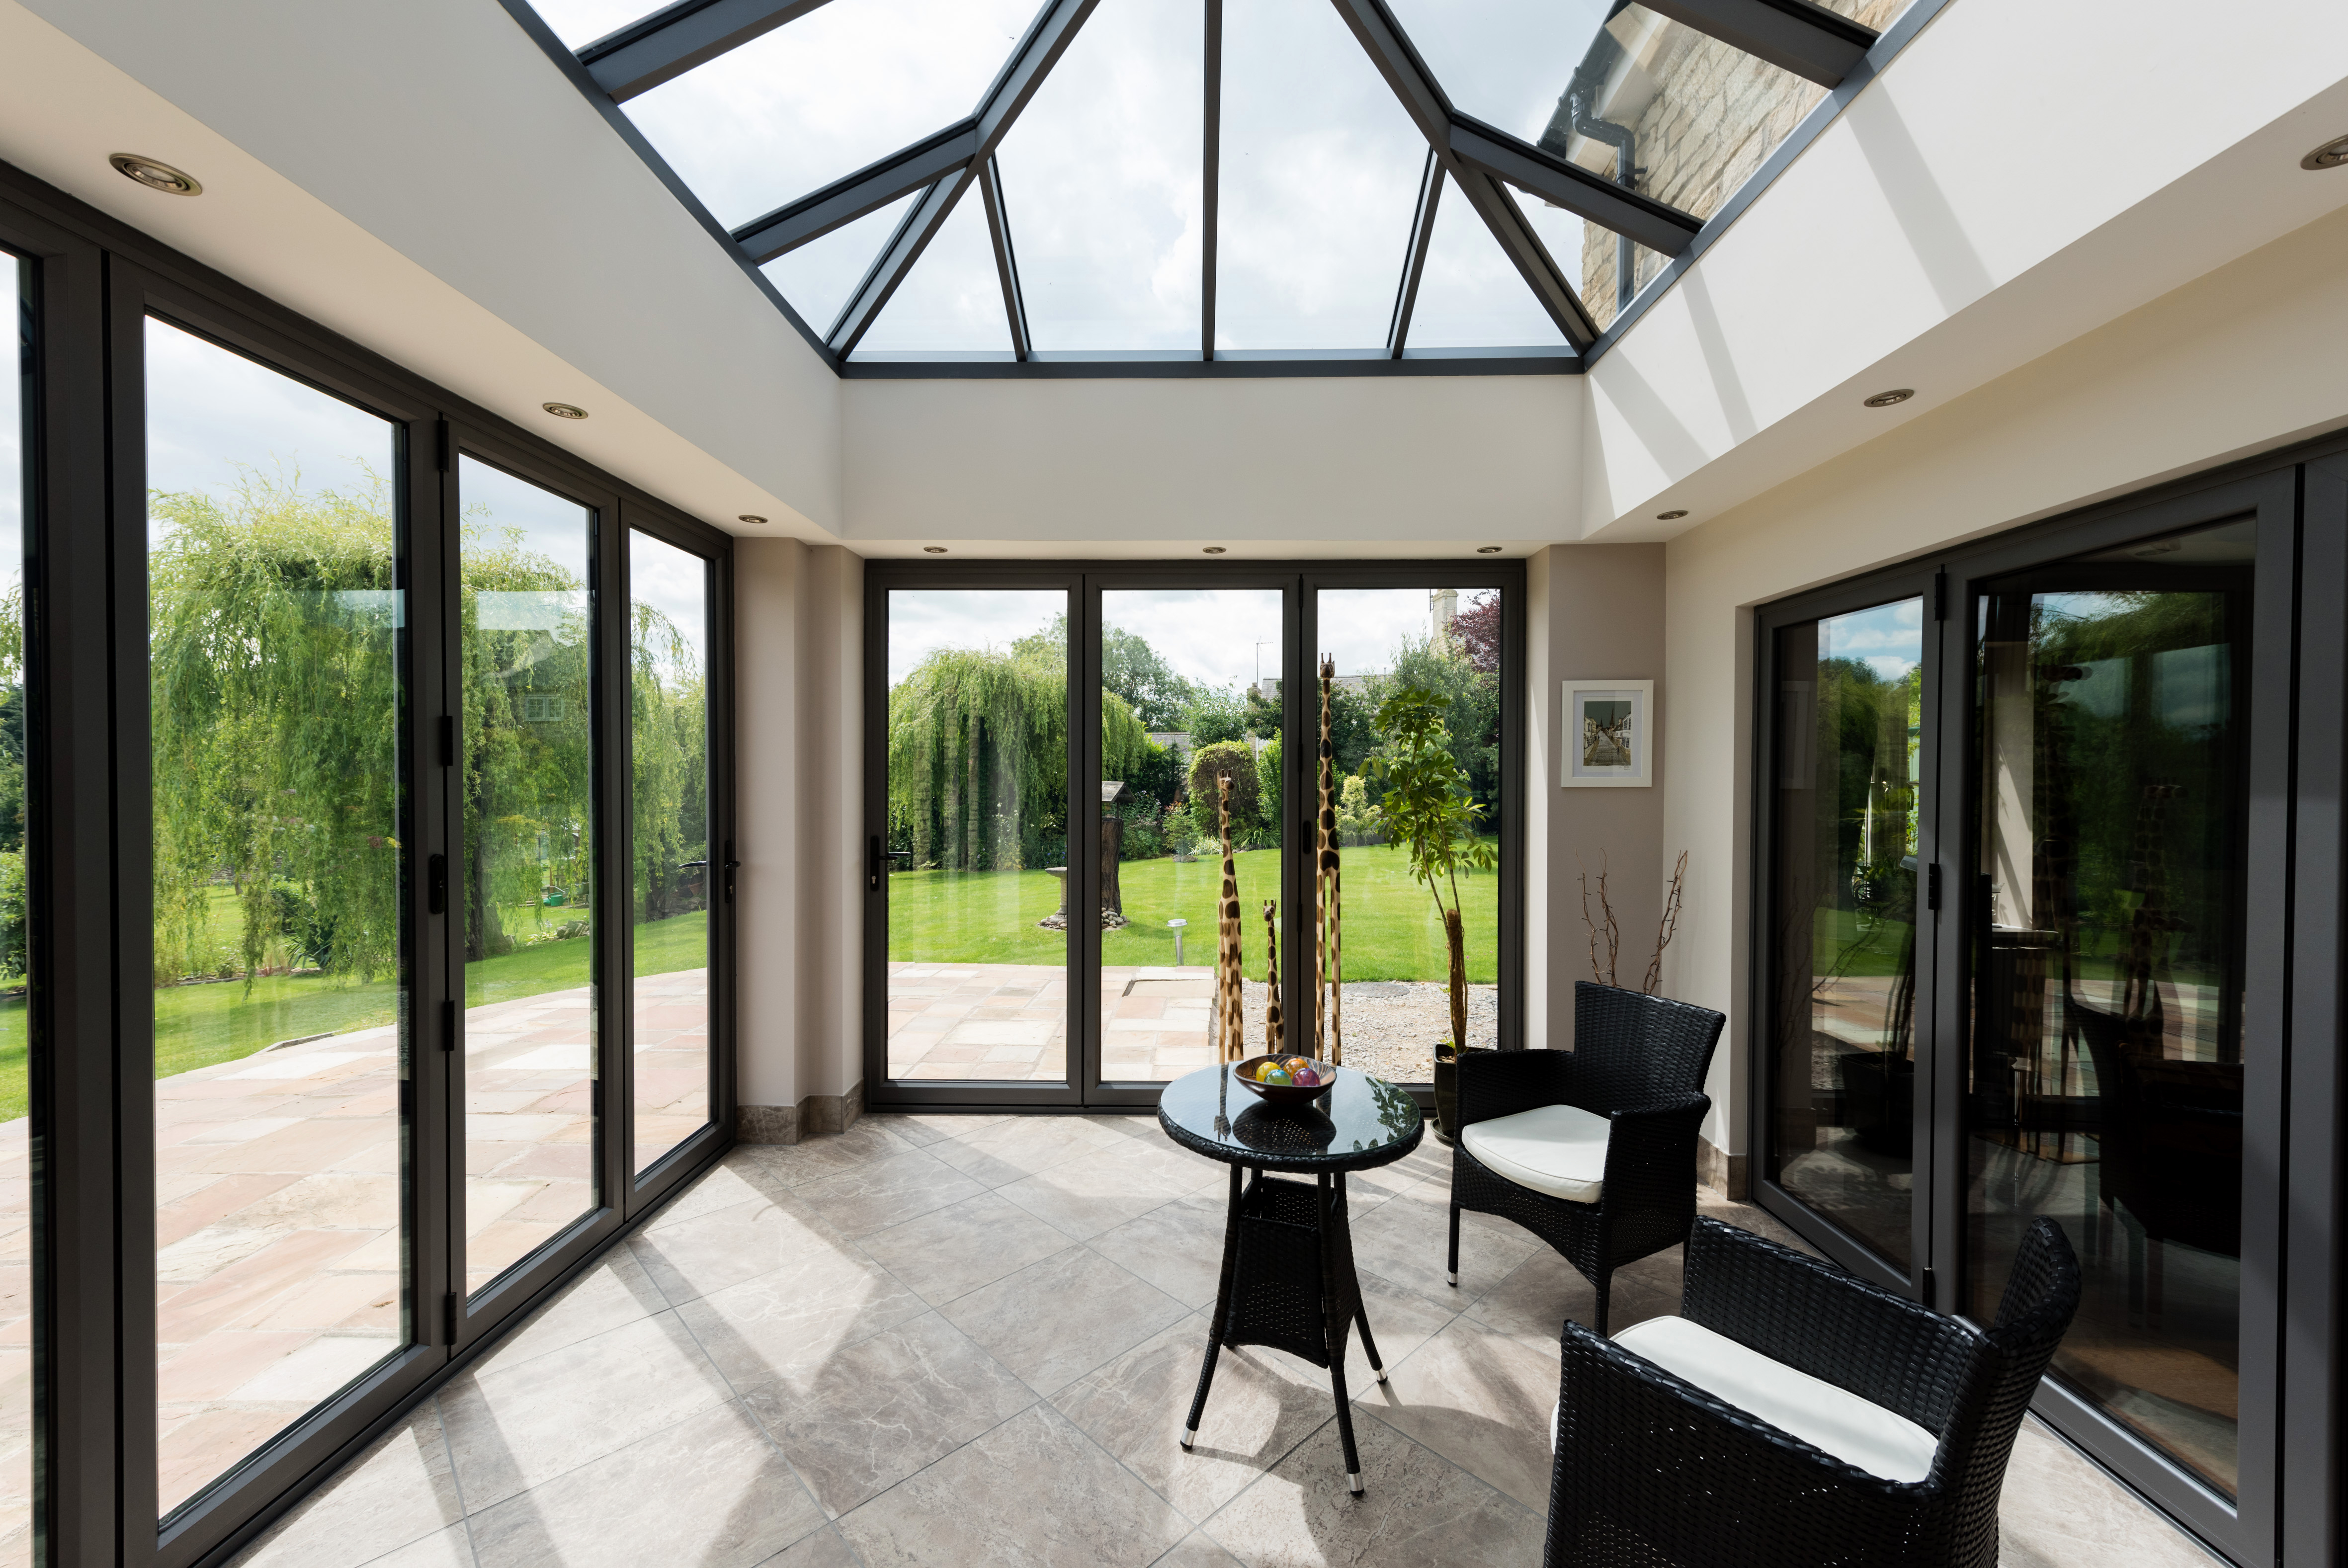 new conservatory design and solid roof extension by 21st Century Conservatories & Fascias